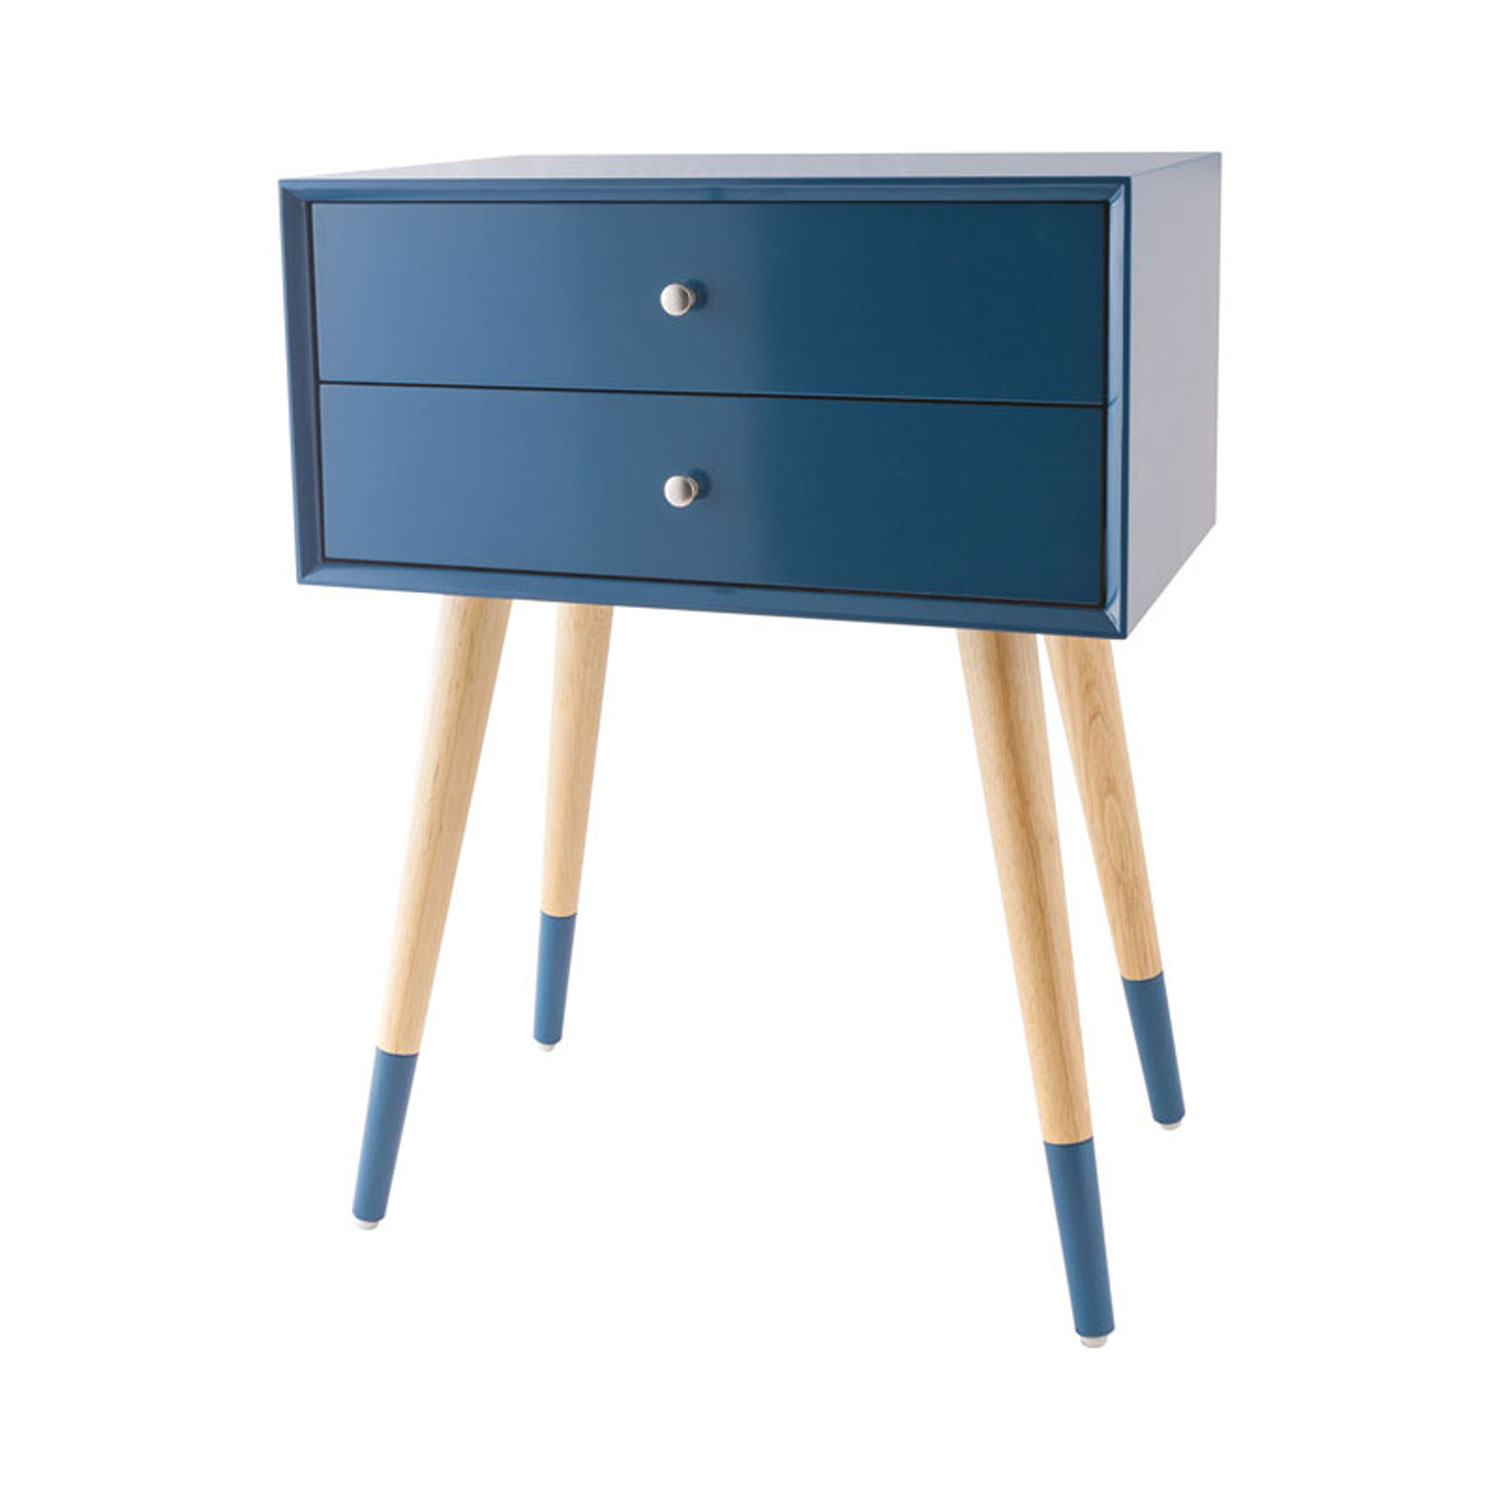 sterling industries googie navy accent table bellacor blue hover zoom cool coffee ideas inexpensive kitchen tables ashley furniture ott opentable round black wood modern baroque